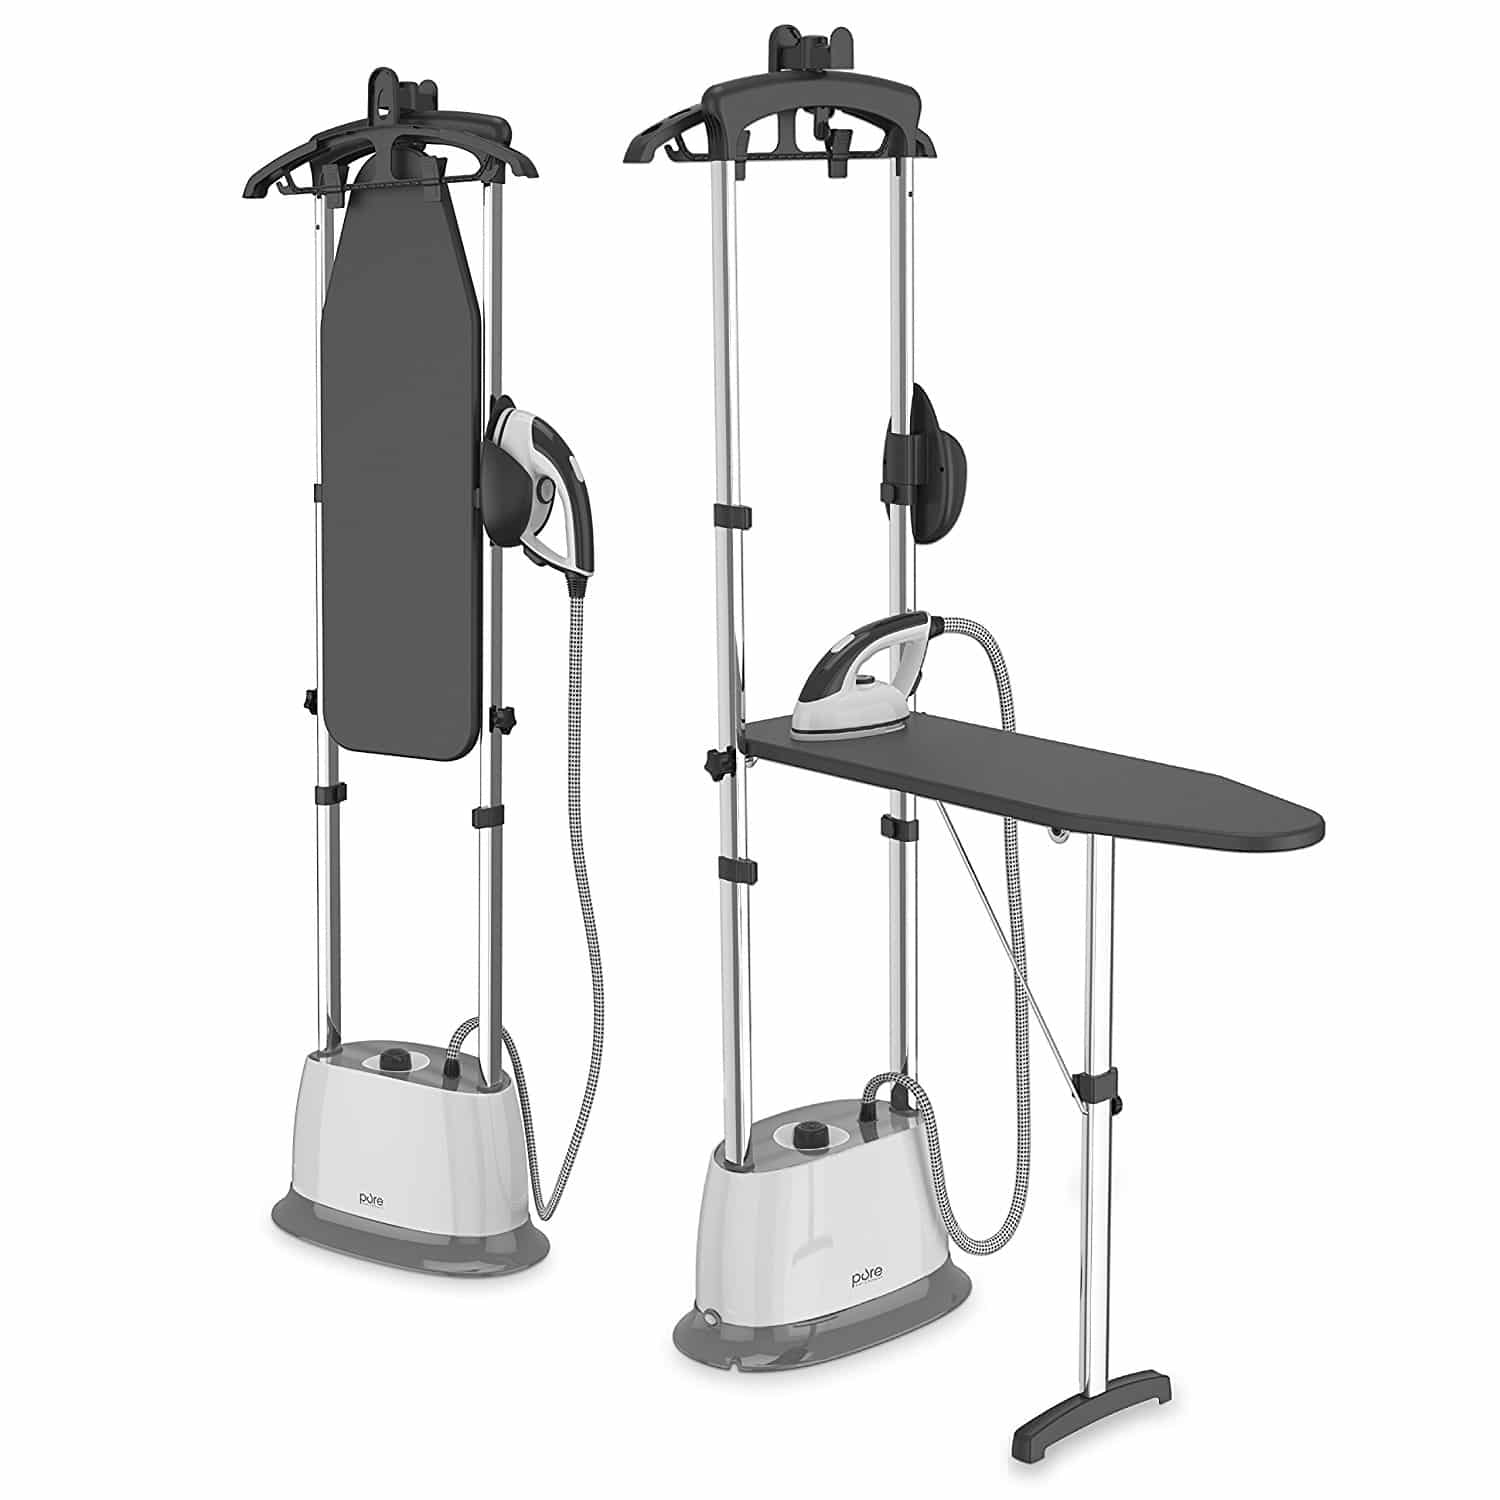 Top 10 Best Standing Fabric Steamers in 2018 ...